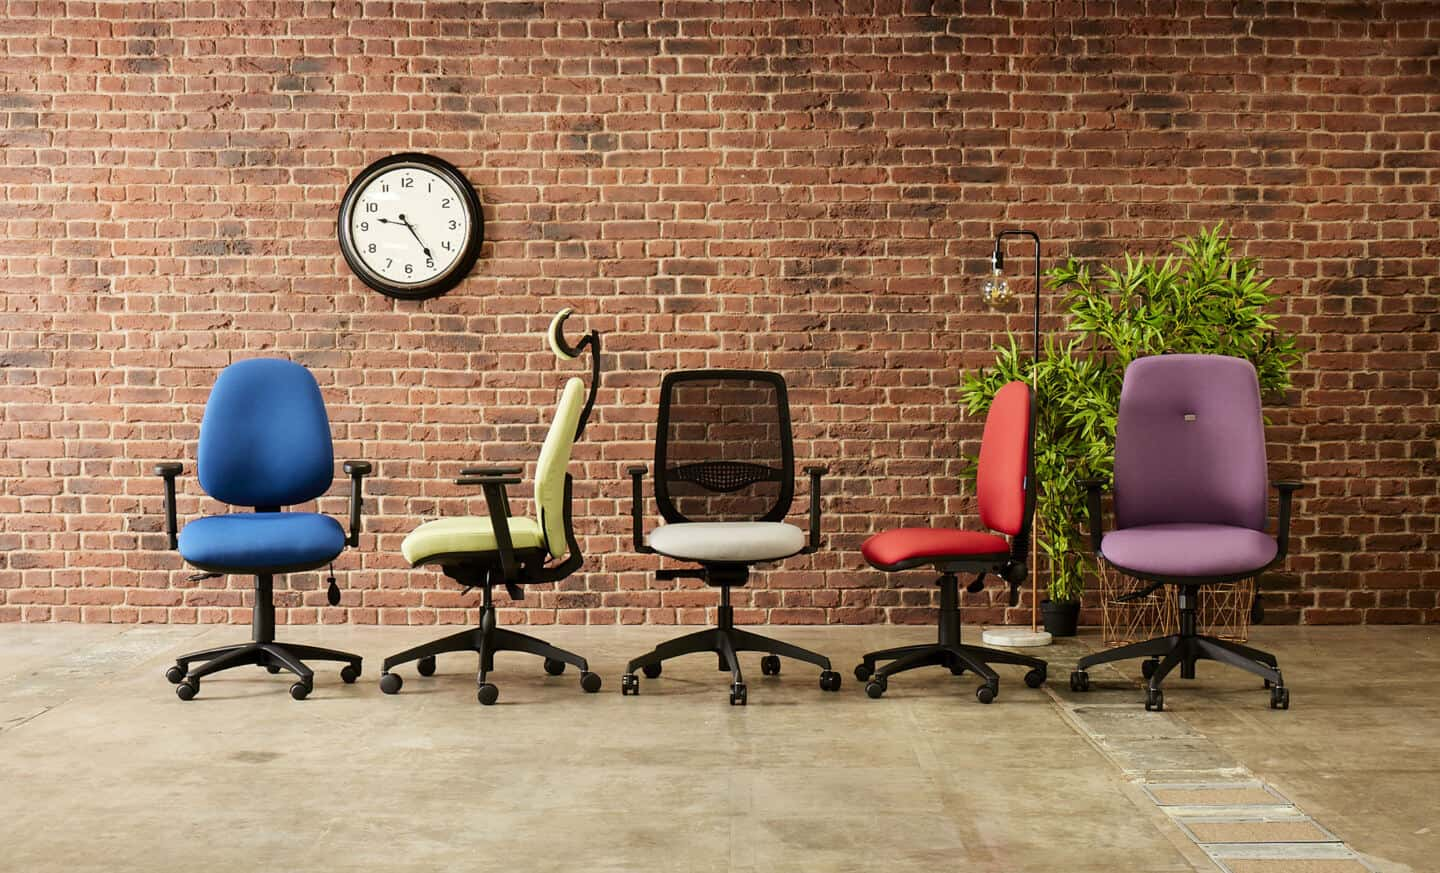 A group of 5 ergonomic office chairs in front of an exposed brick wall with a clock and a plant behind